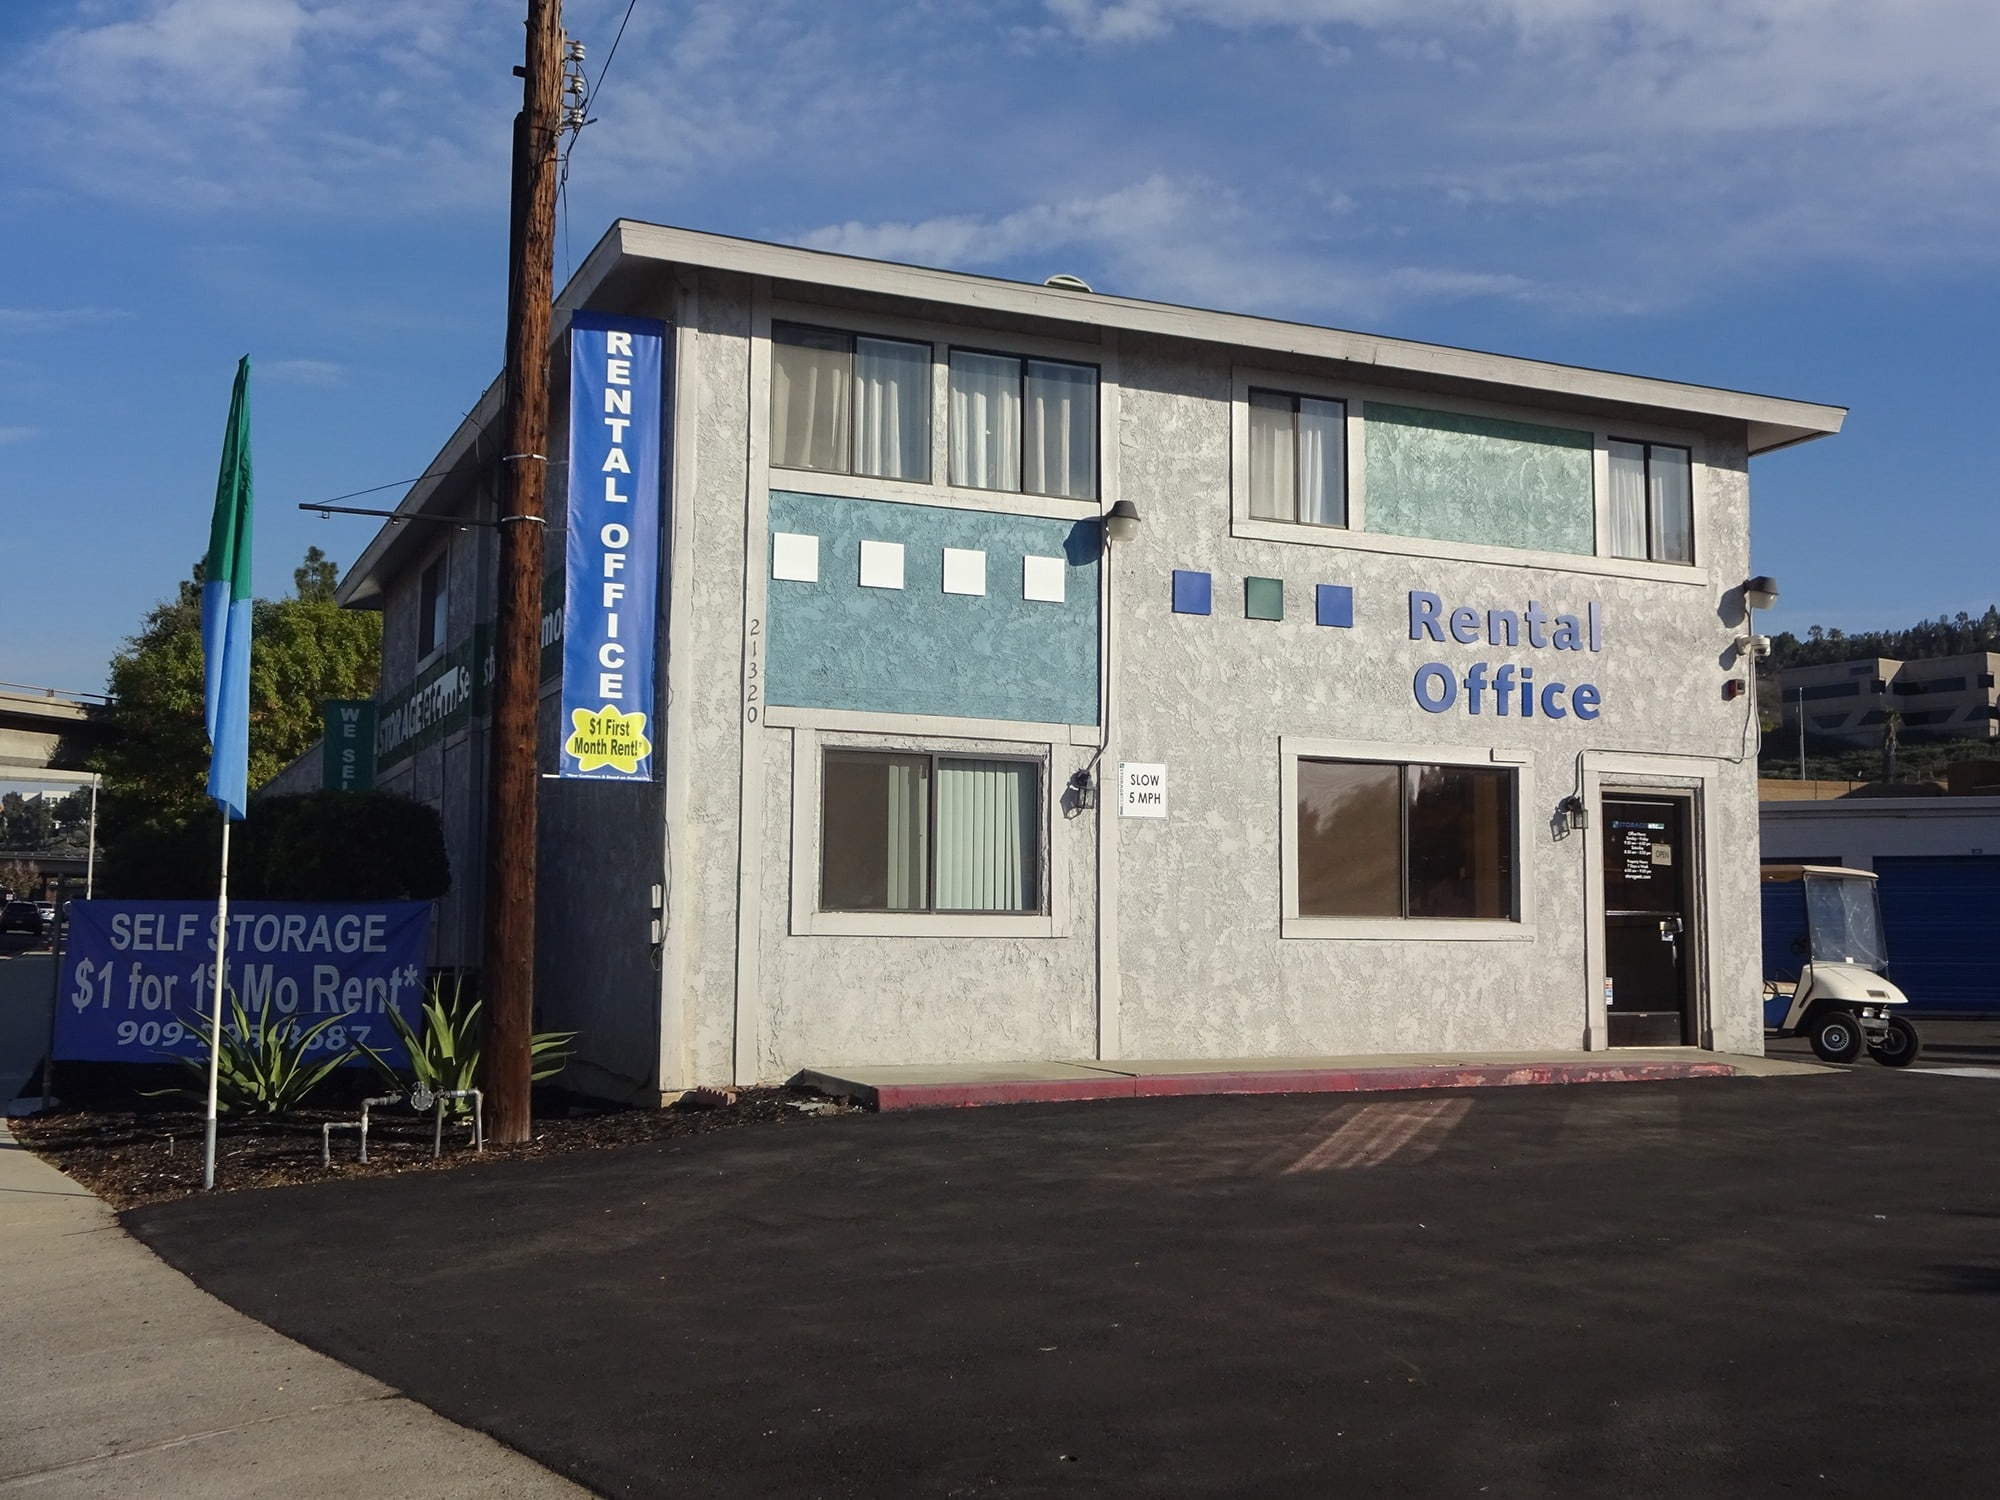 Self Storage Rental Office at Storage Etc... Diamond Bar